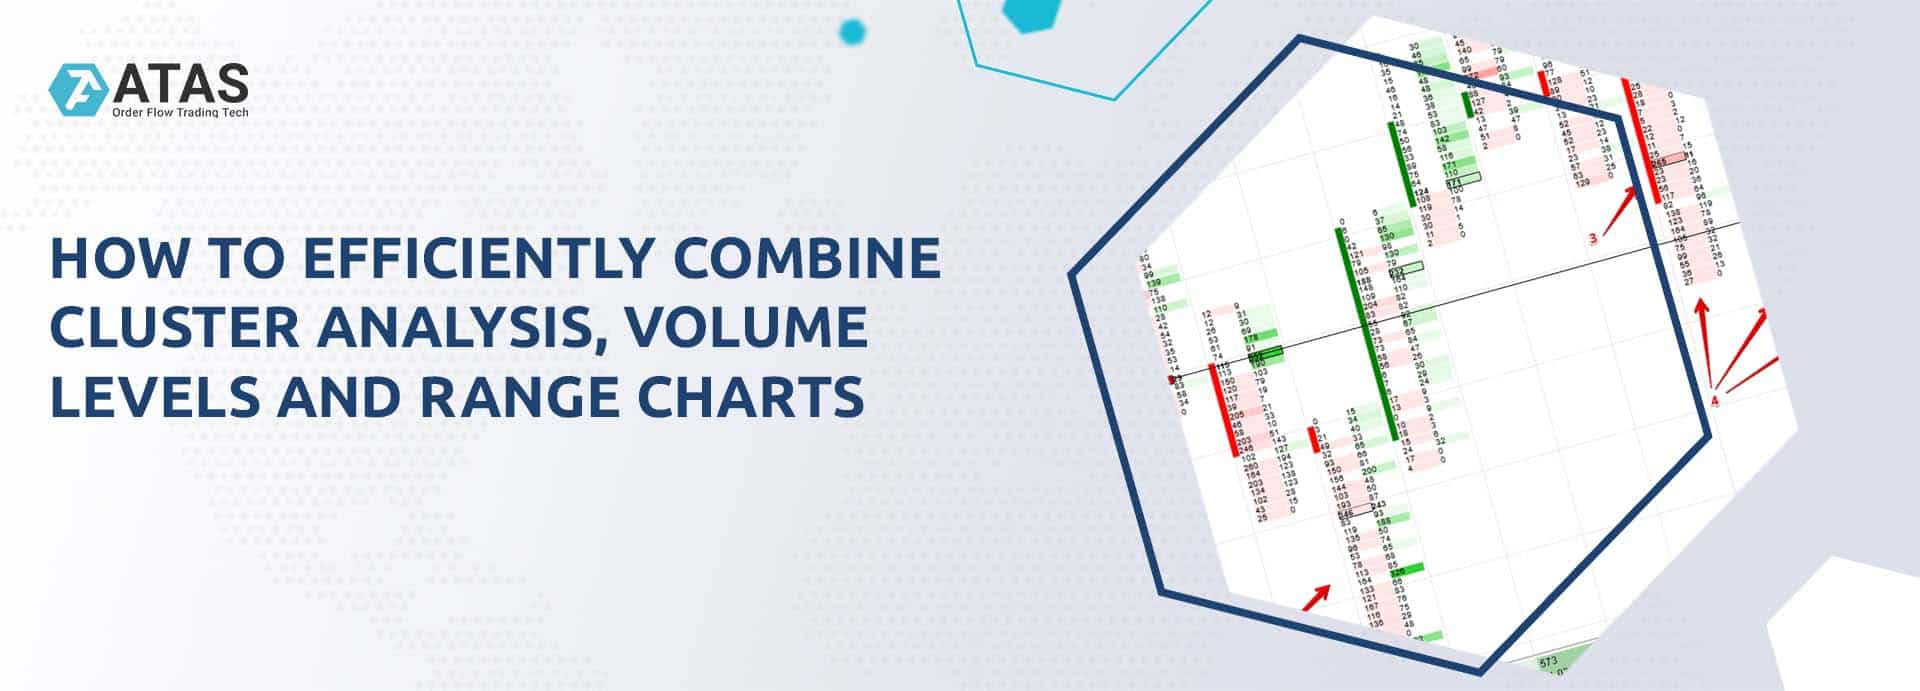 How to efficiently combine cluster analysis, volume levels and Range charts